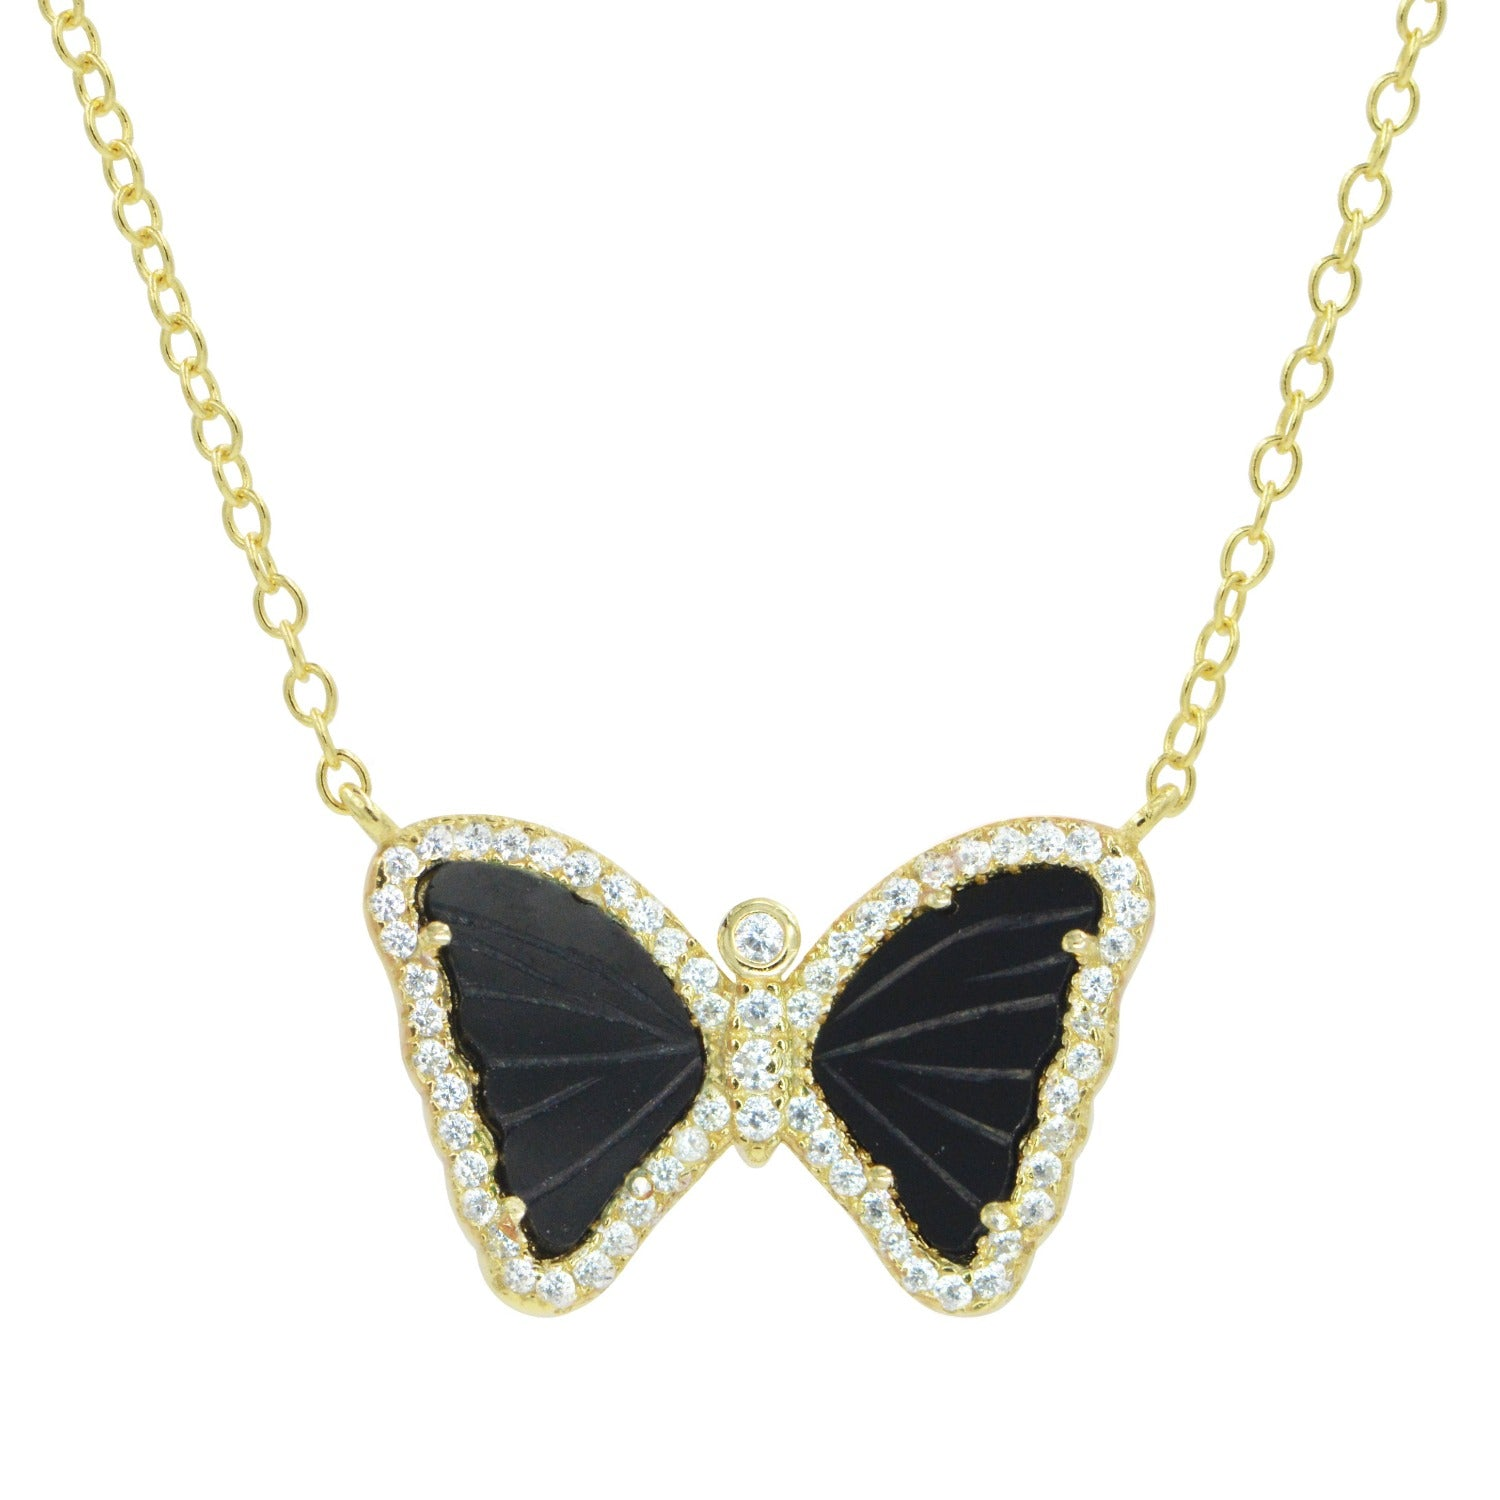 Mini Gemstone Butterfly Necklace in Black Onyx